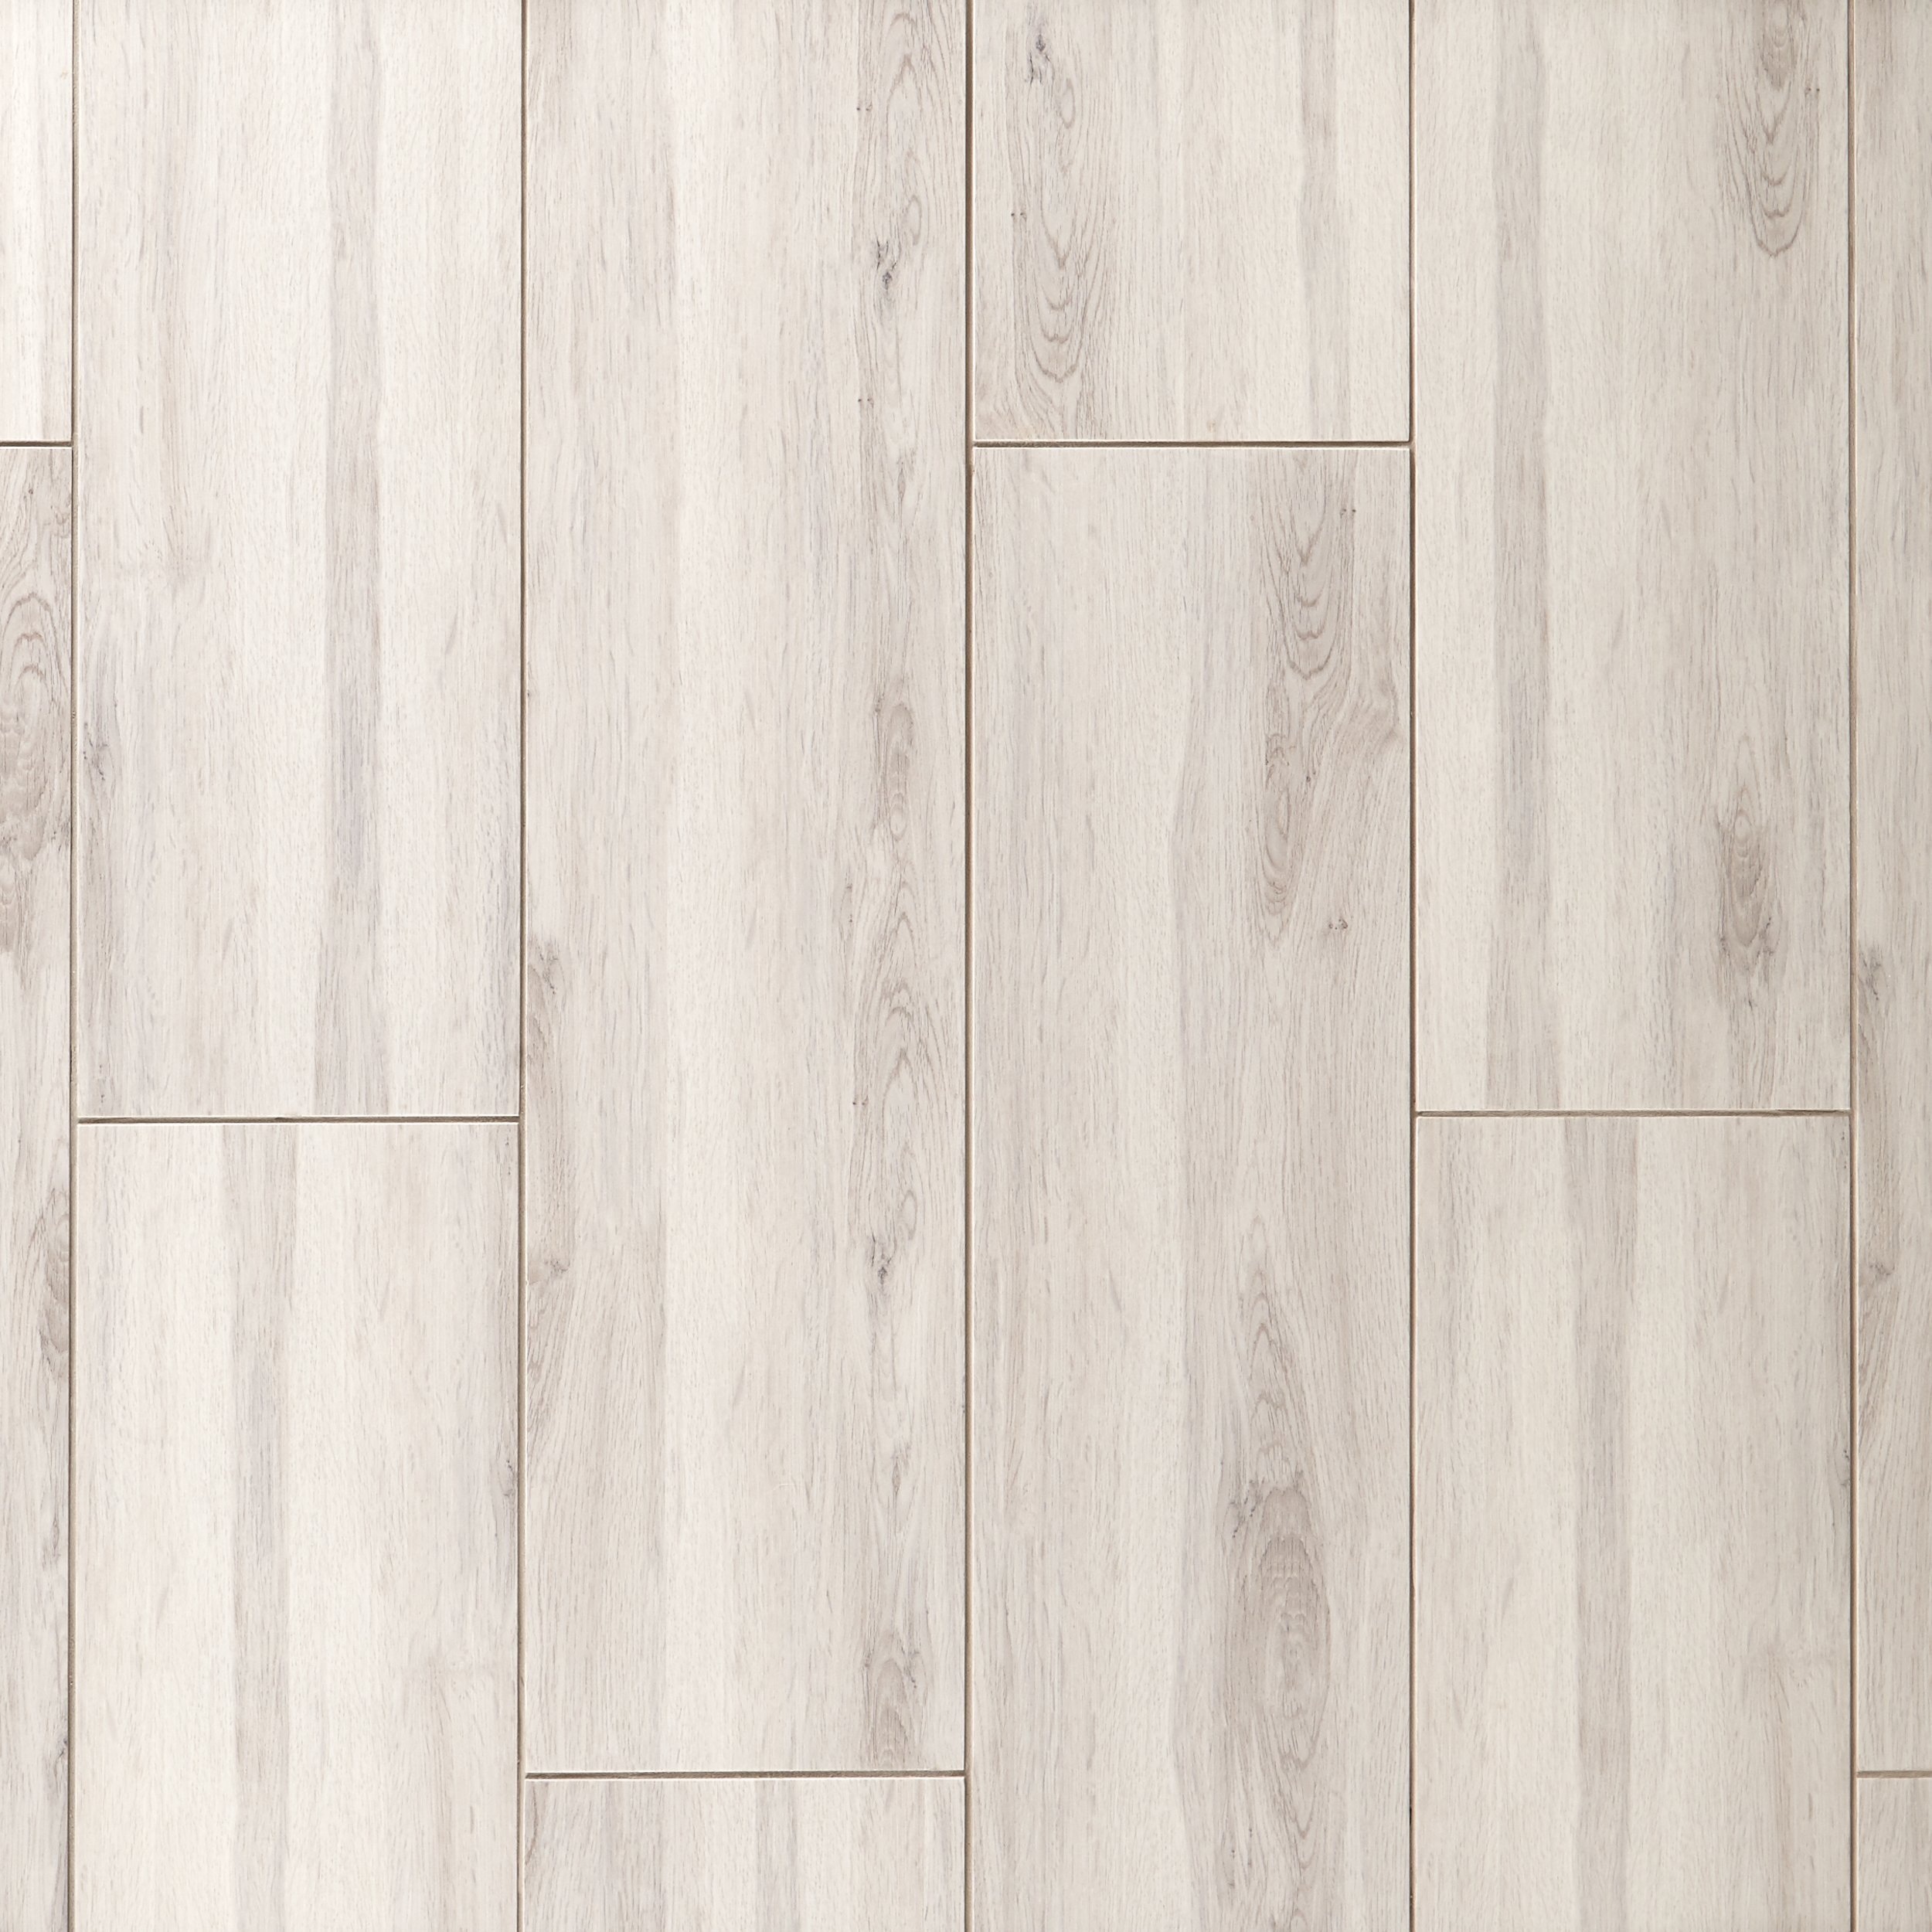 Ronne Gris Wood Plank Ceramic Tile 8 X 24 100414879 Floor And